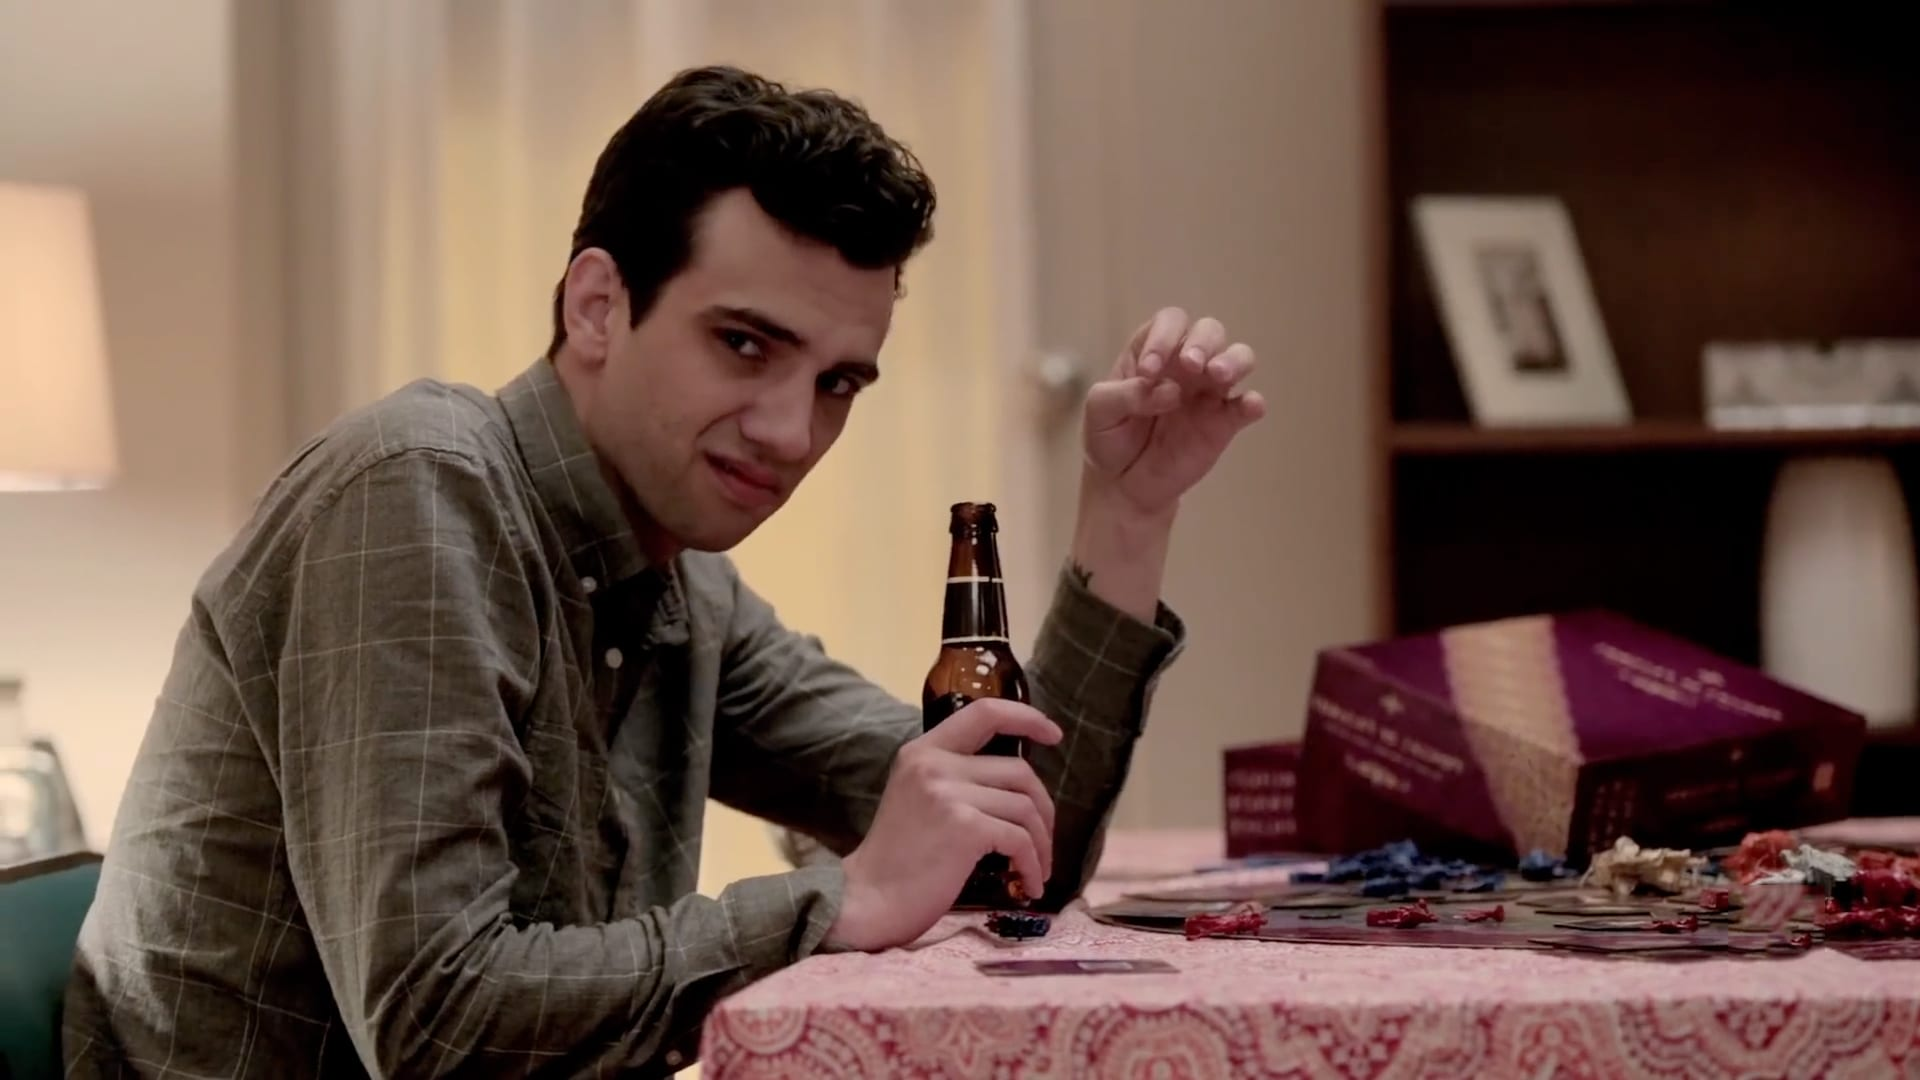 Man seeking a man